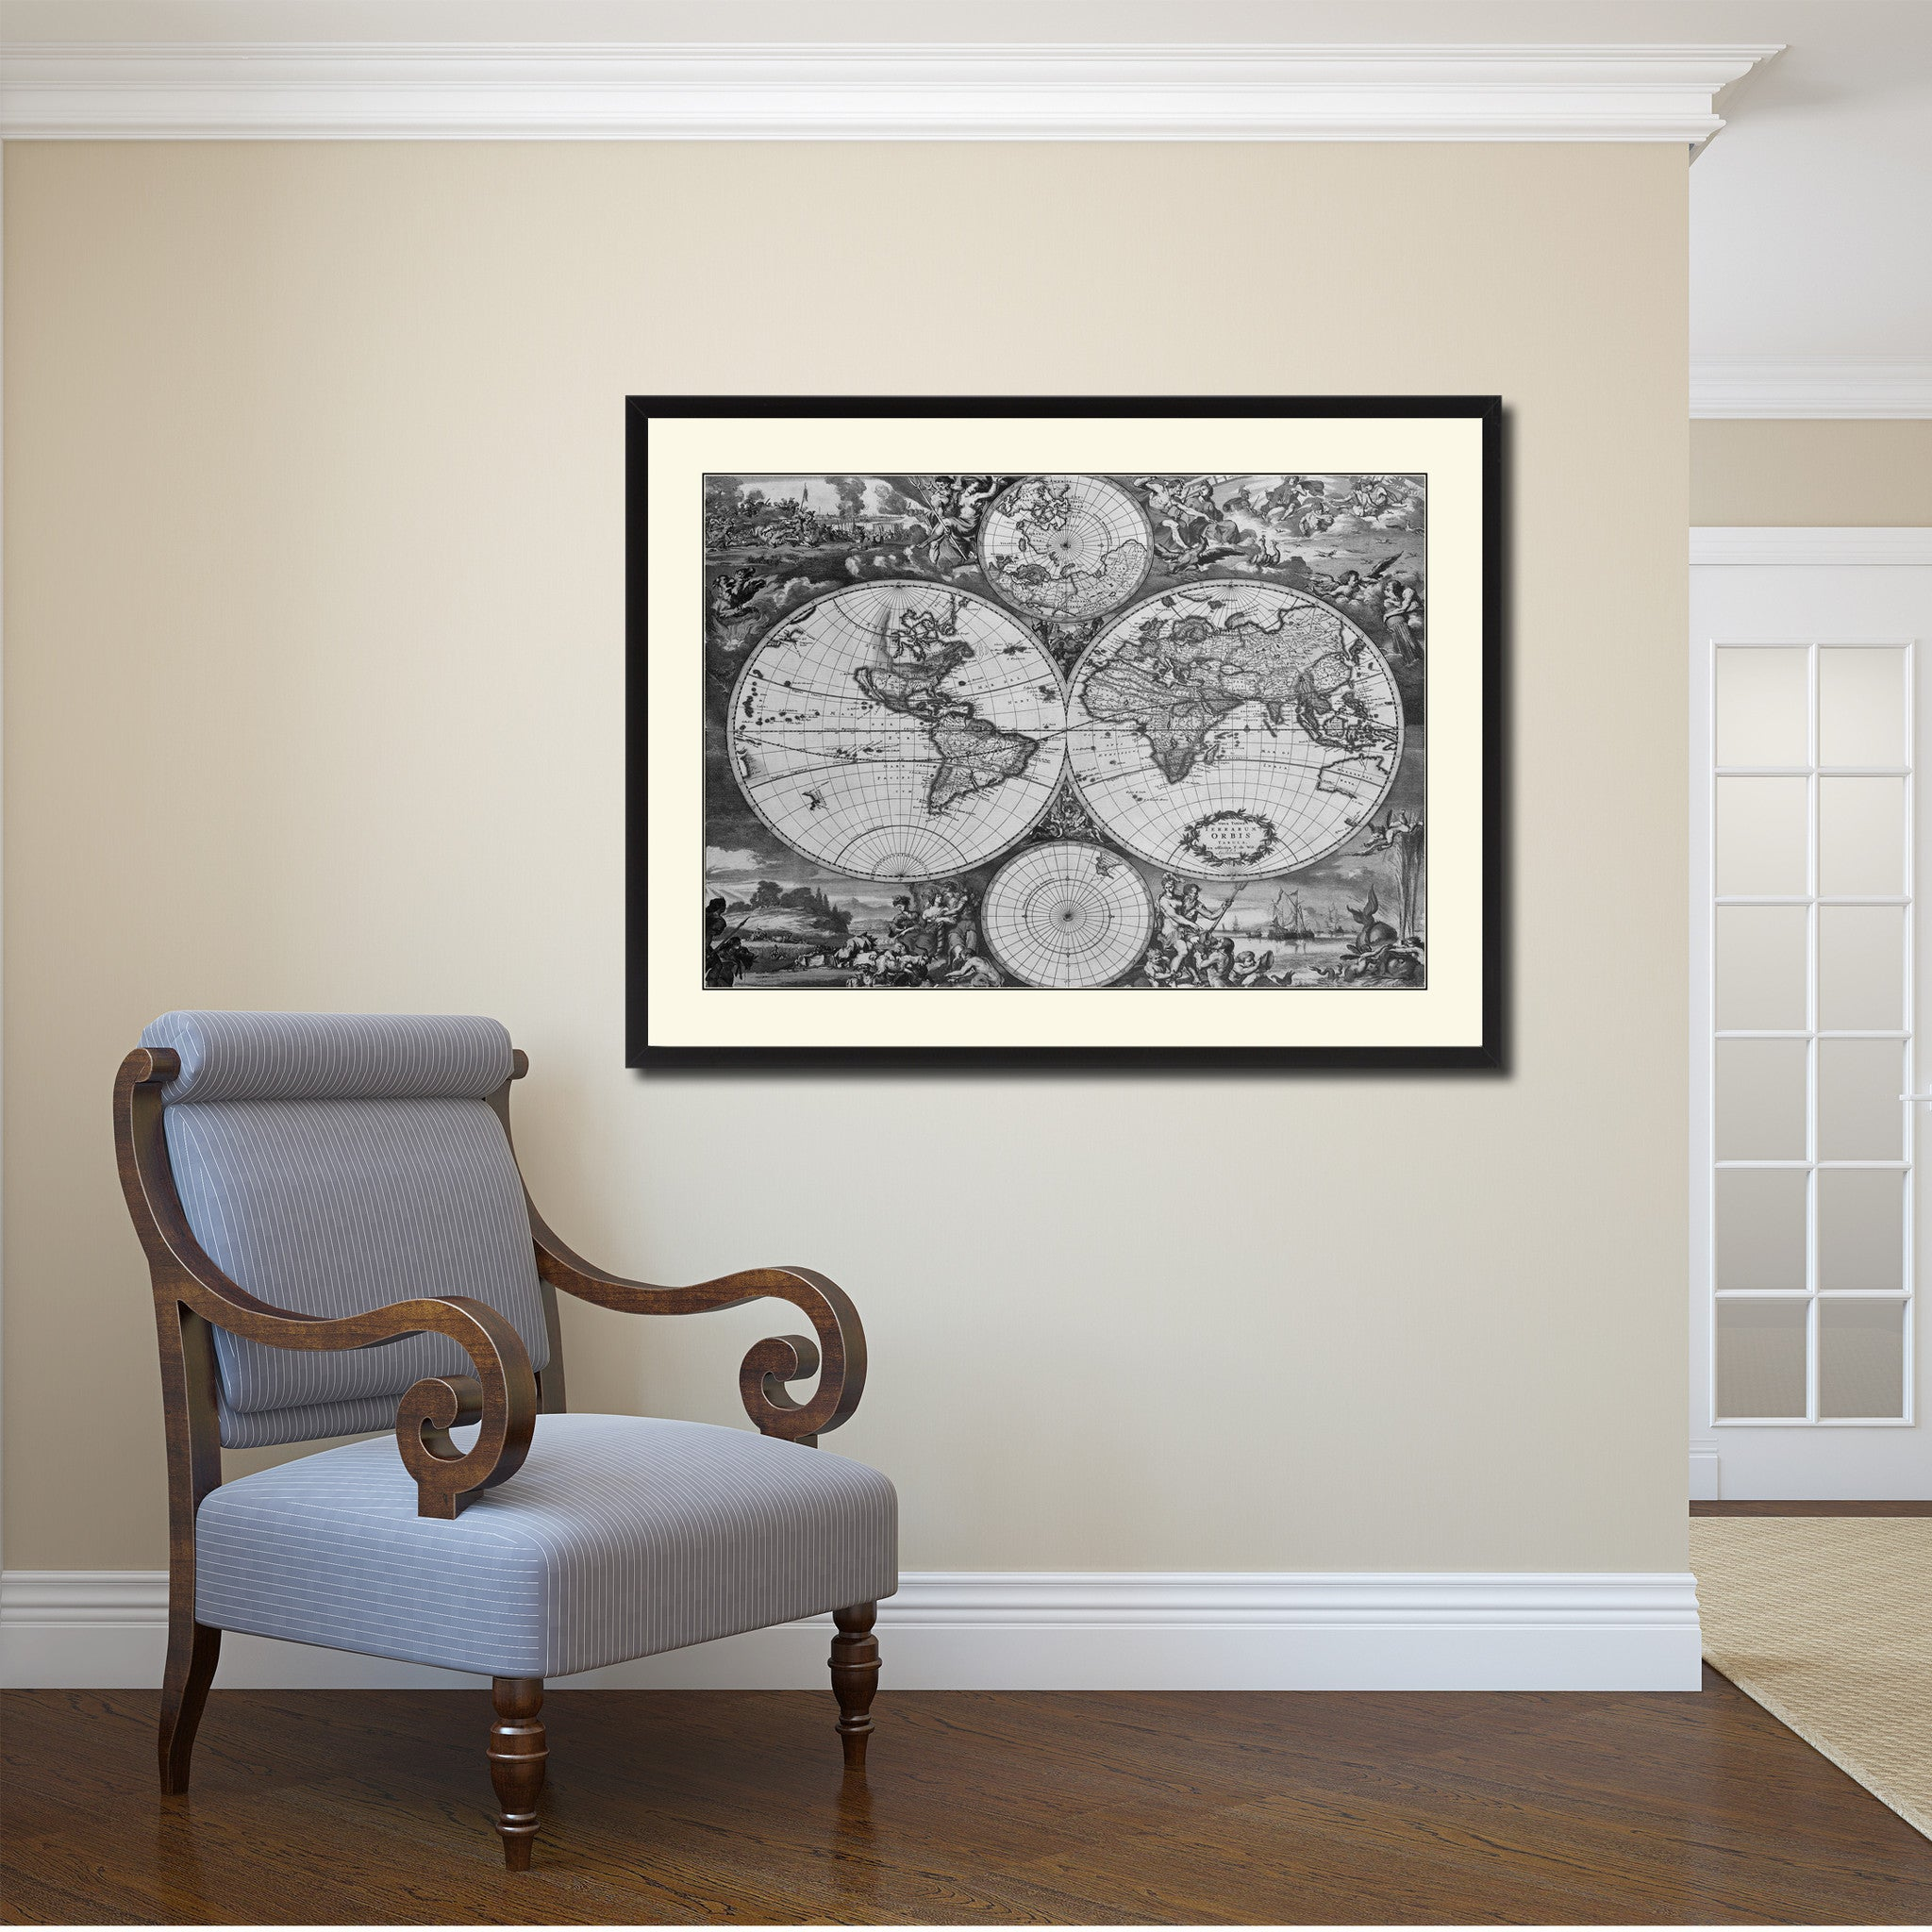 World Hemispheres Vintage BW Map Canvas Print Picture Frame Home Decor Wall Art Gift Ideas